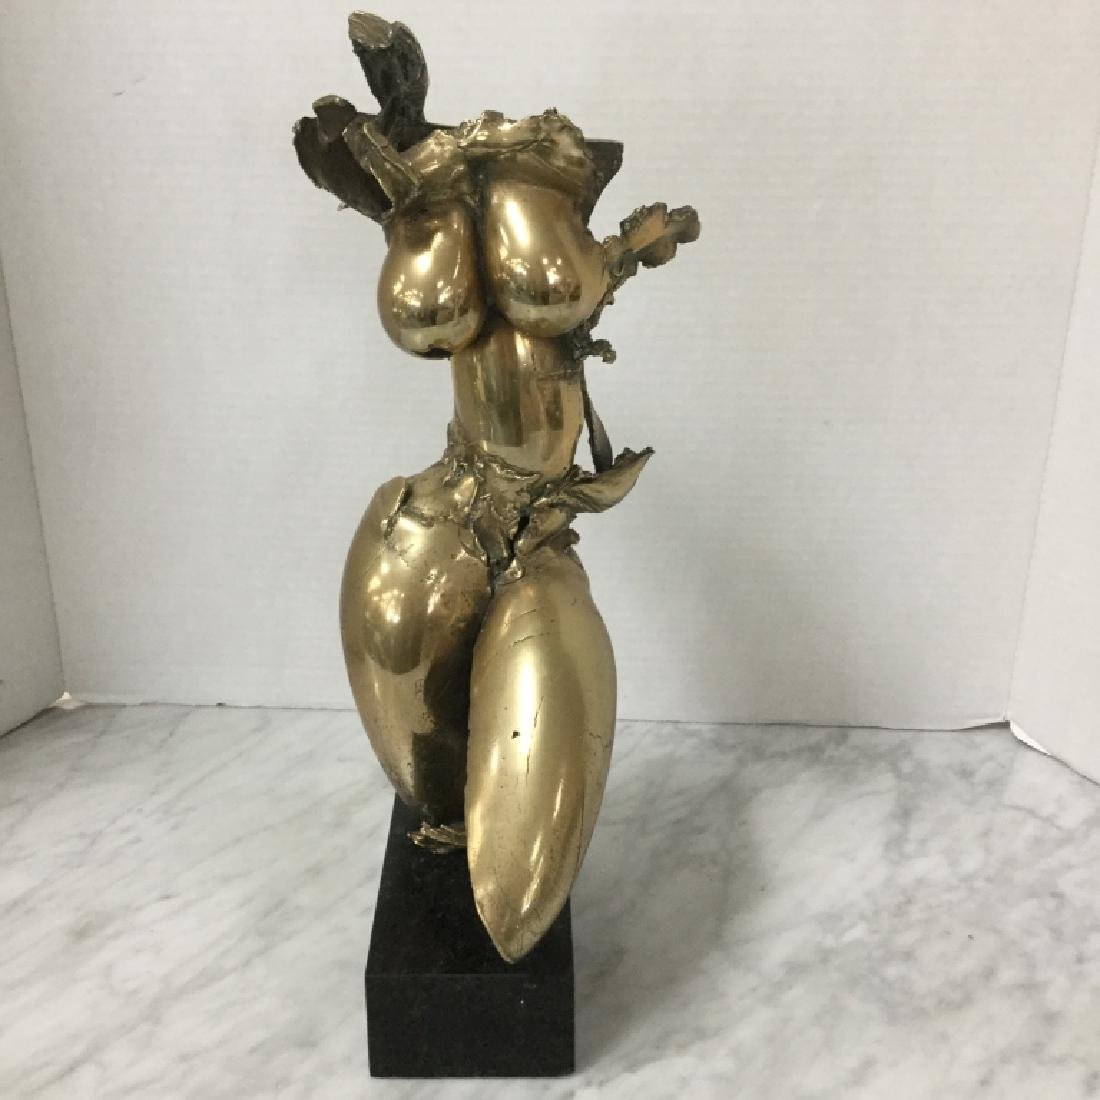 Brass Nude Sculpture, Signed PG 1980